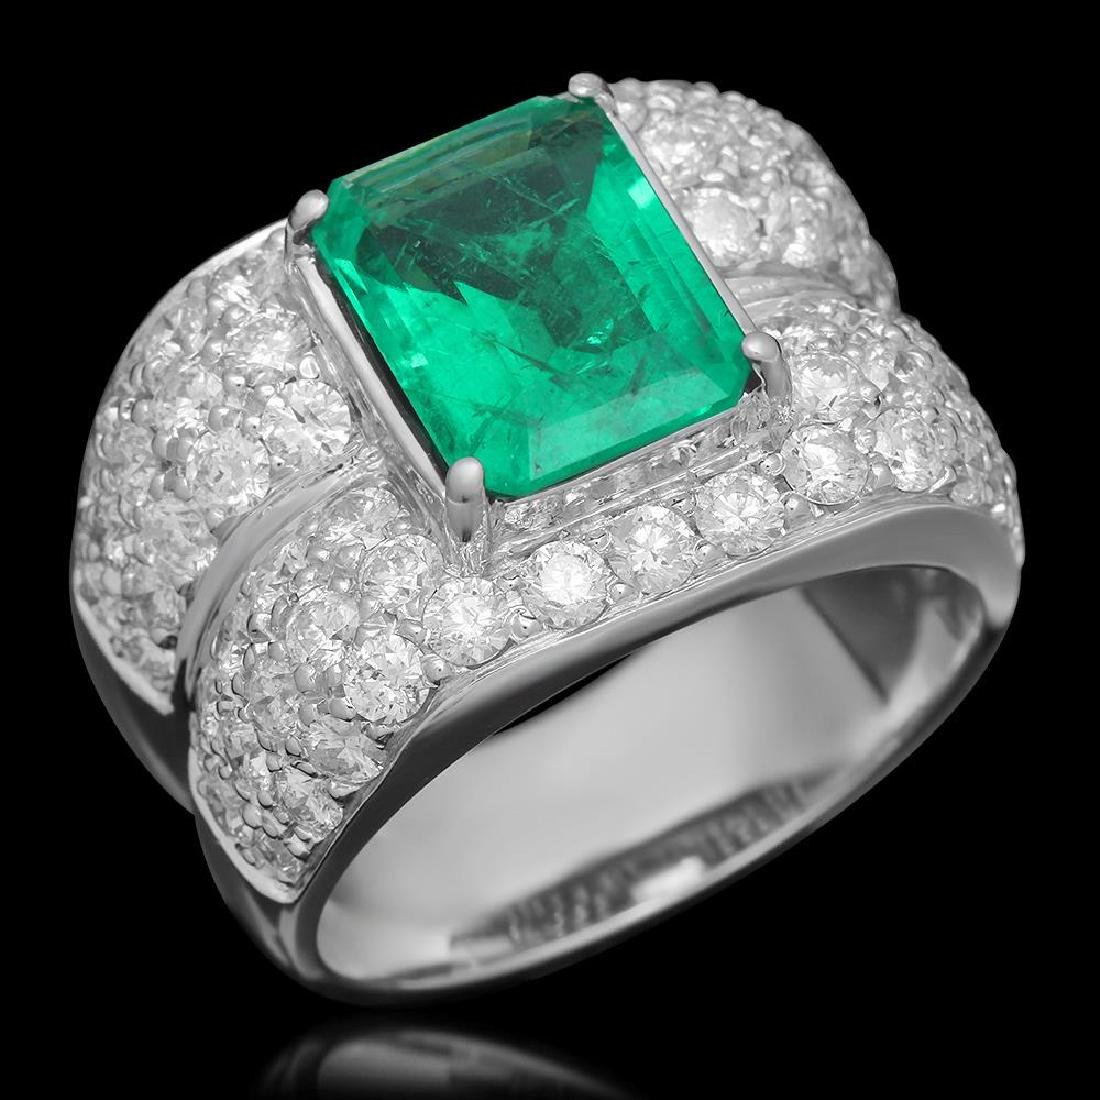 14K Gold 3.45 Emerald 3.68 Diamond Ring